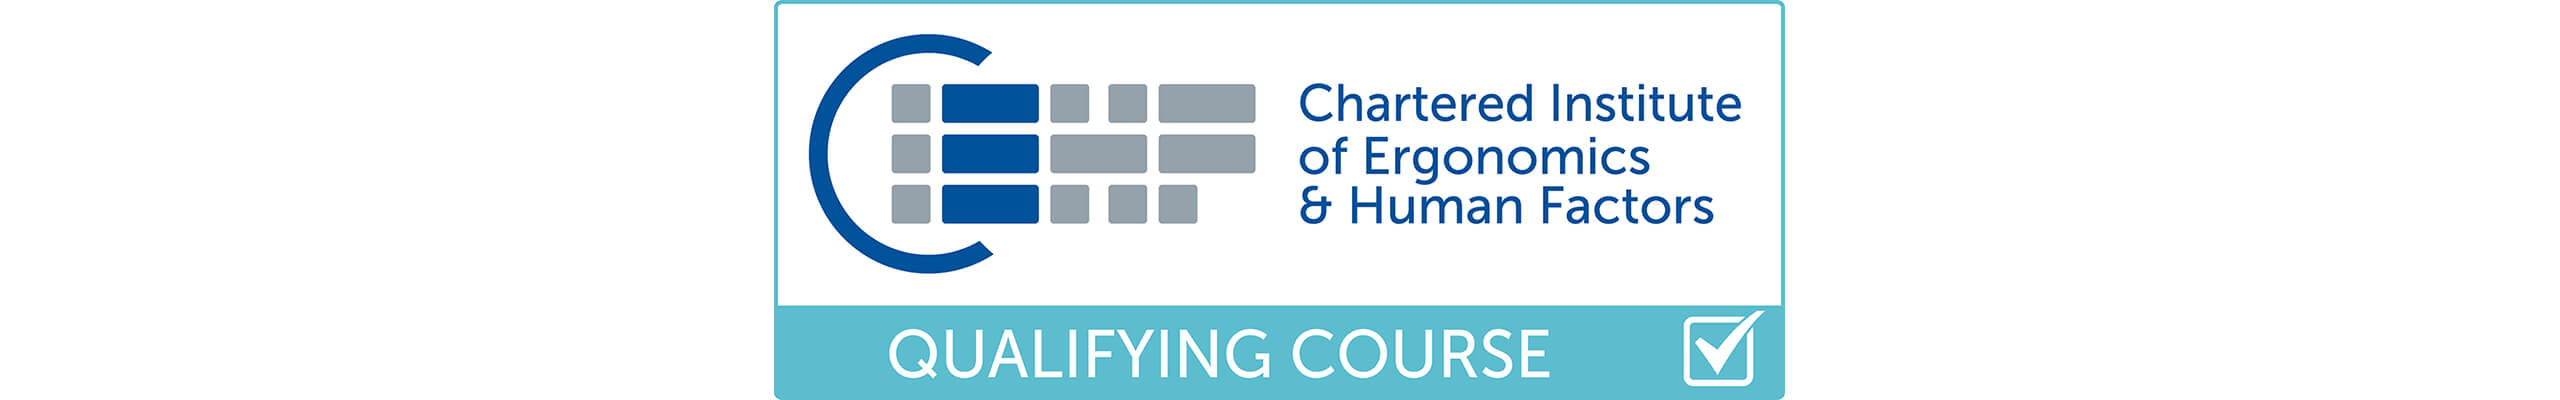 Chartered Institute of Ergonomics and Human Factors (CIEHF) Qualifying Course logo